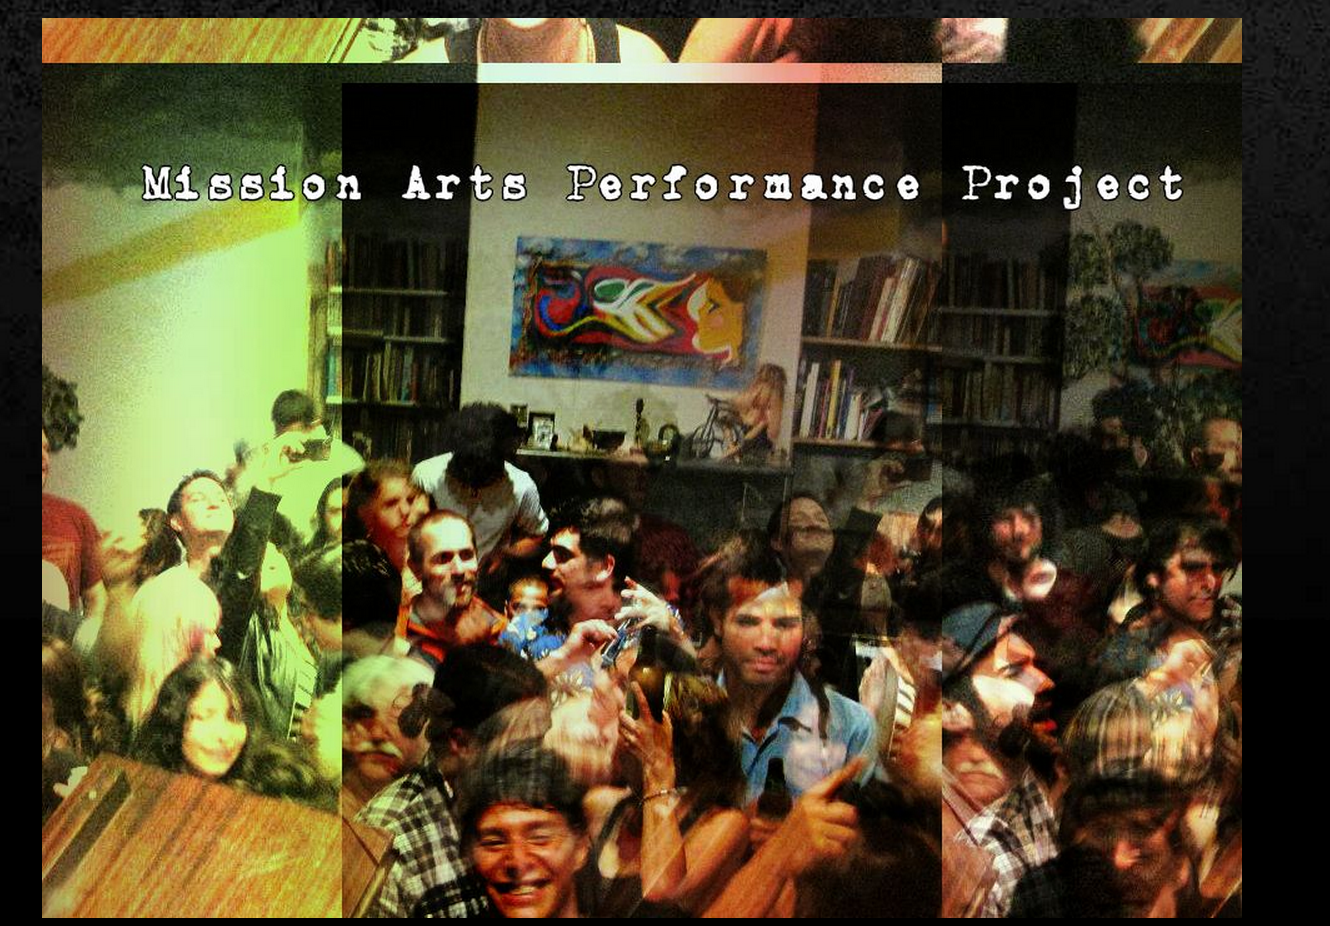 The Mission Arts and Performance Project is On for Tonight